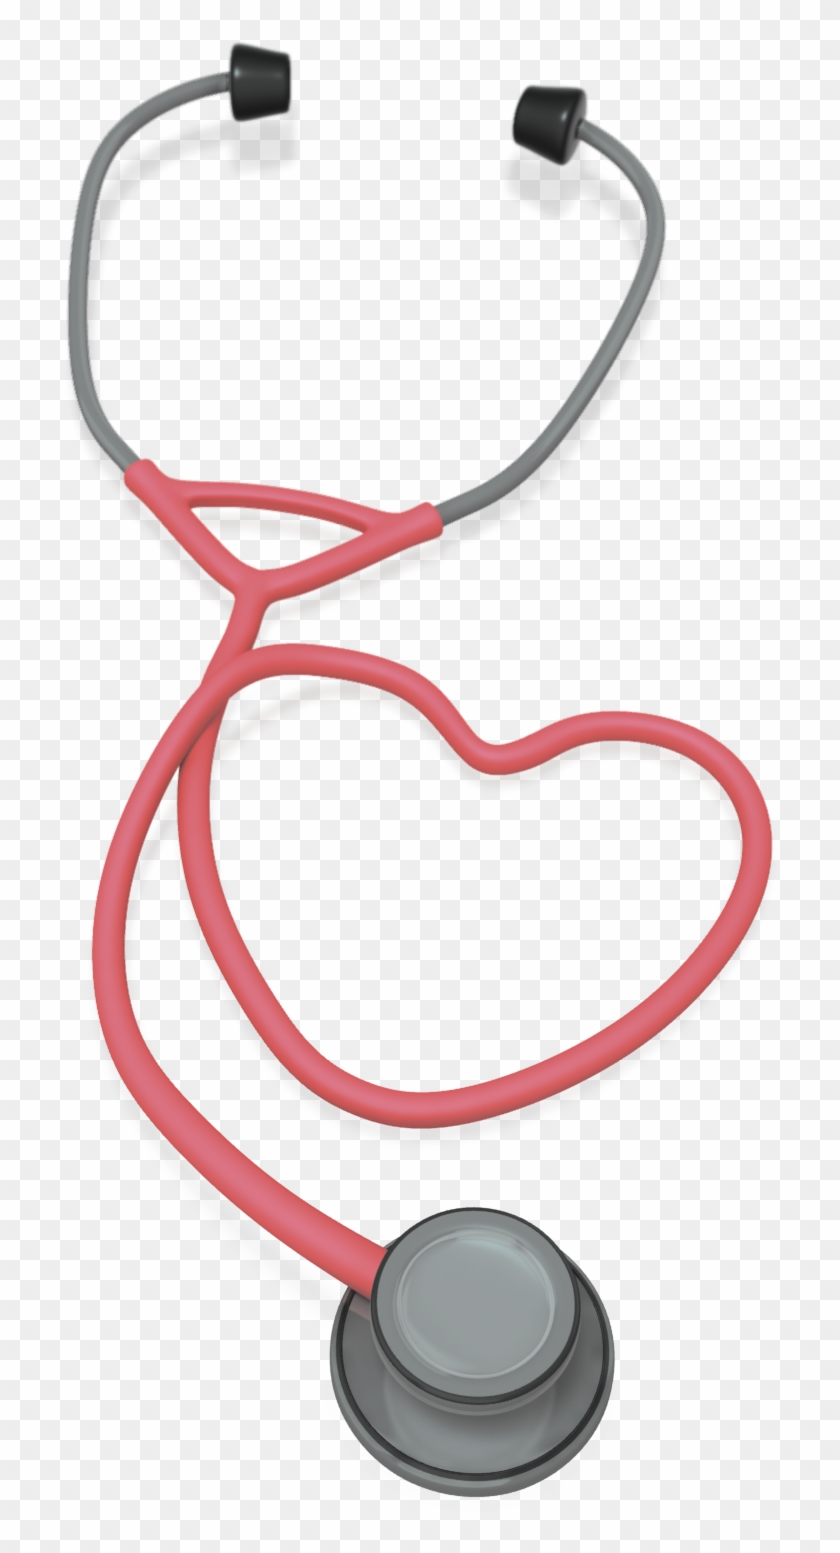 hight resolution of free pictures heart stethoscope clipart image stethoscope clipart